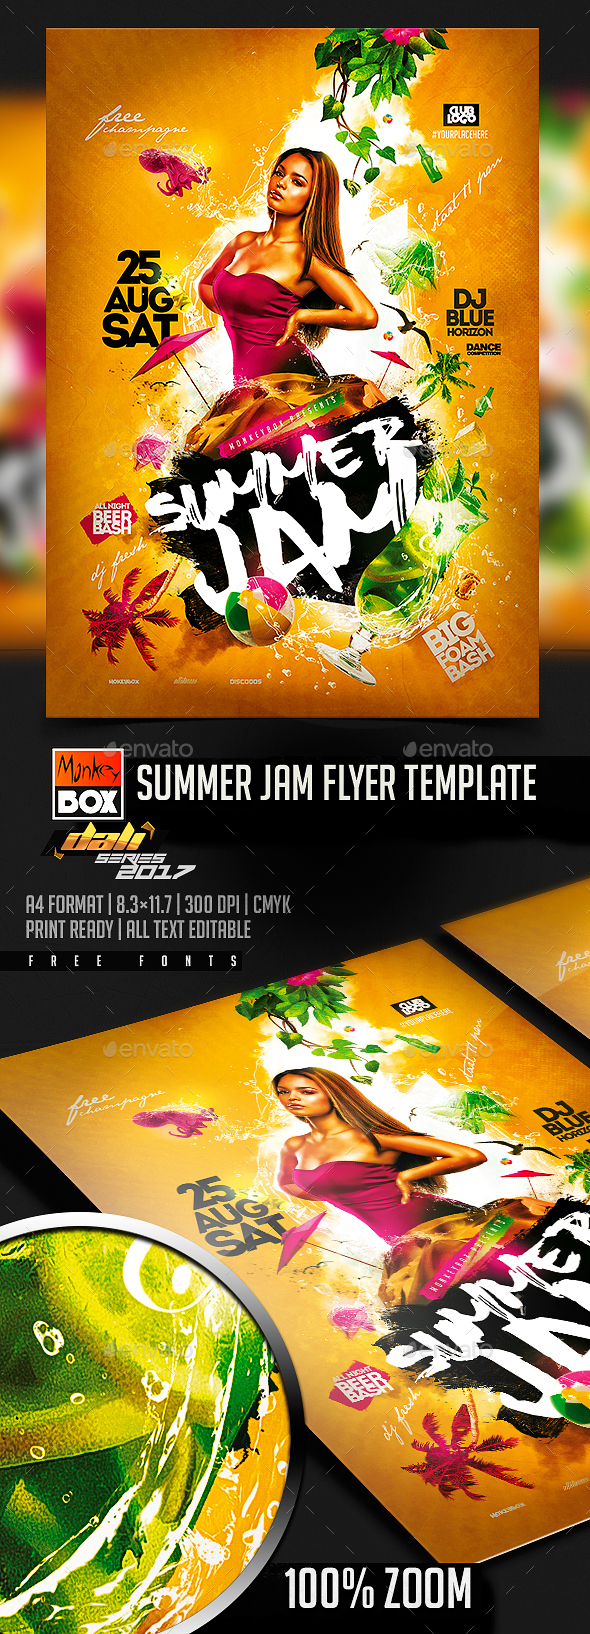 Summer Jam Flyer Template - Flyers Print Templates